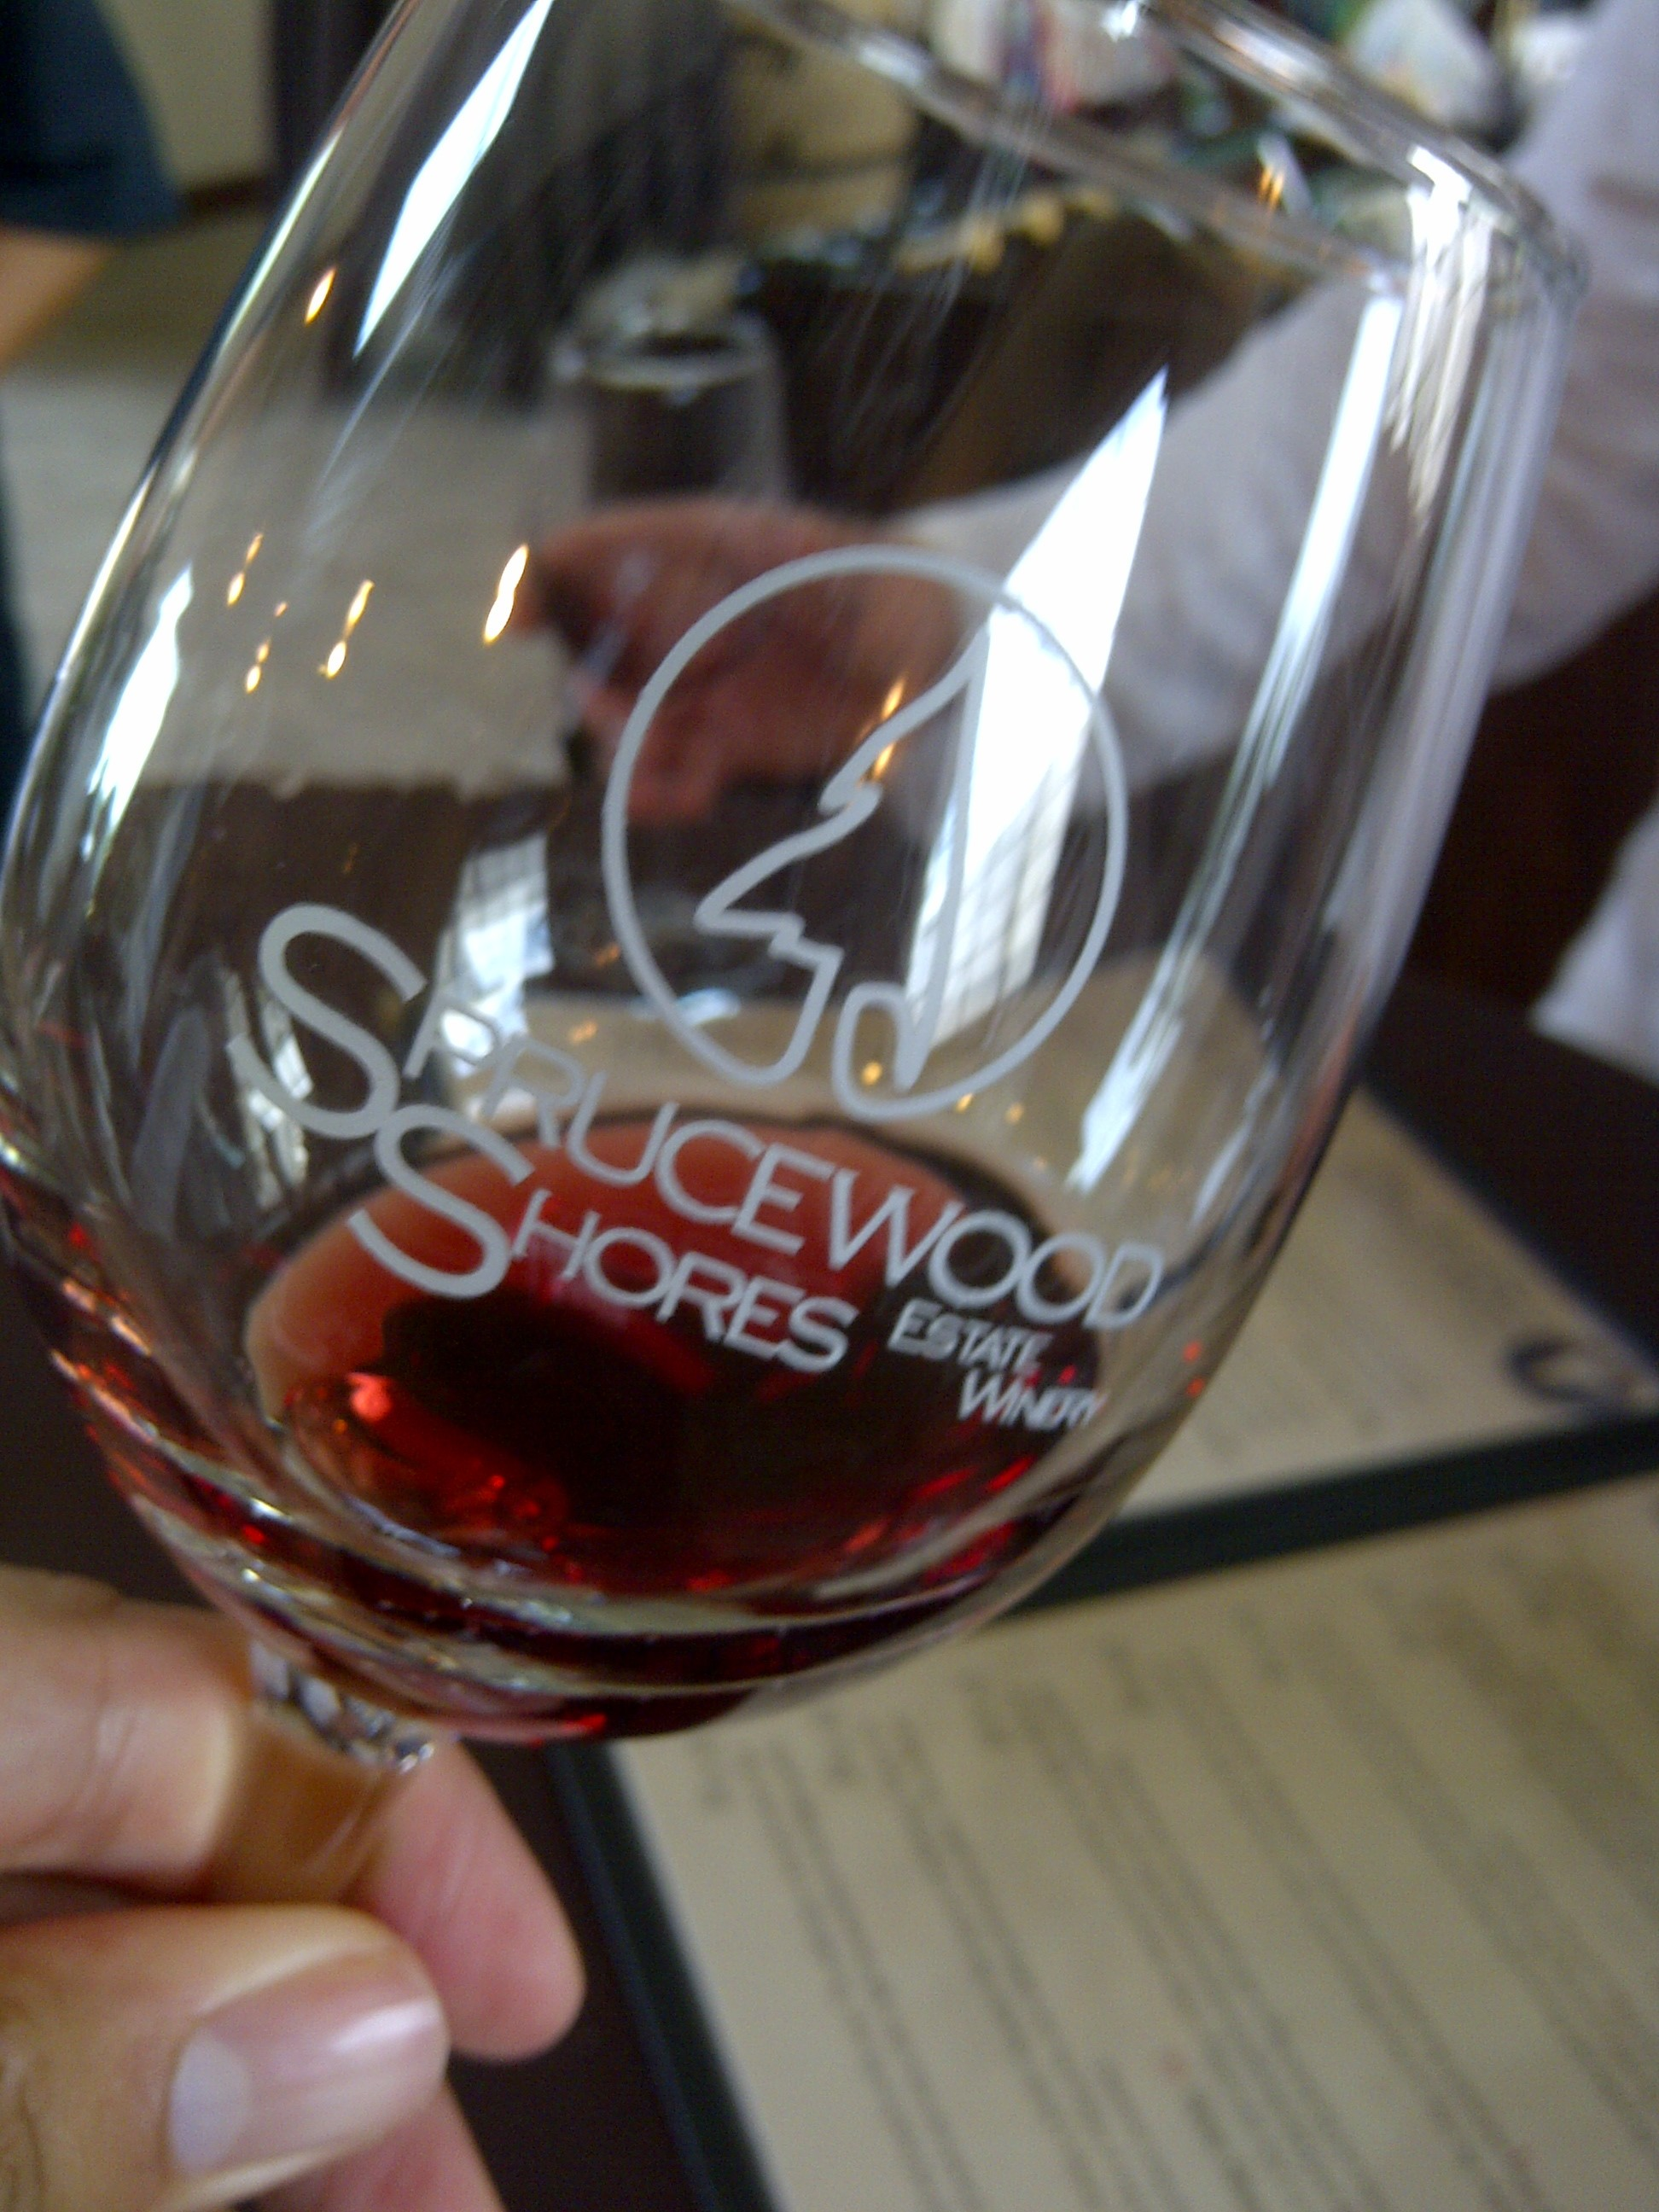 A tasting of red at Sprucewood Shores Estate Winery